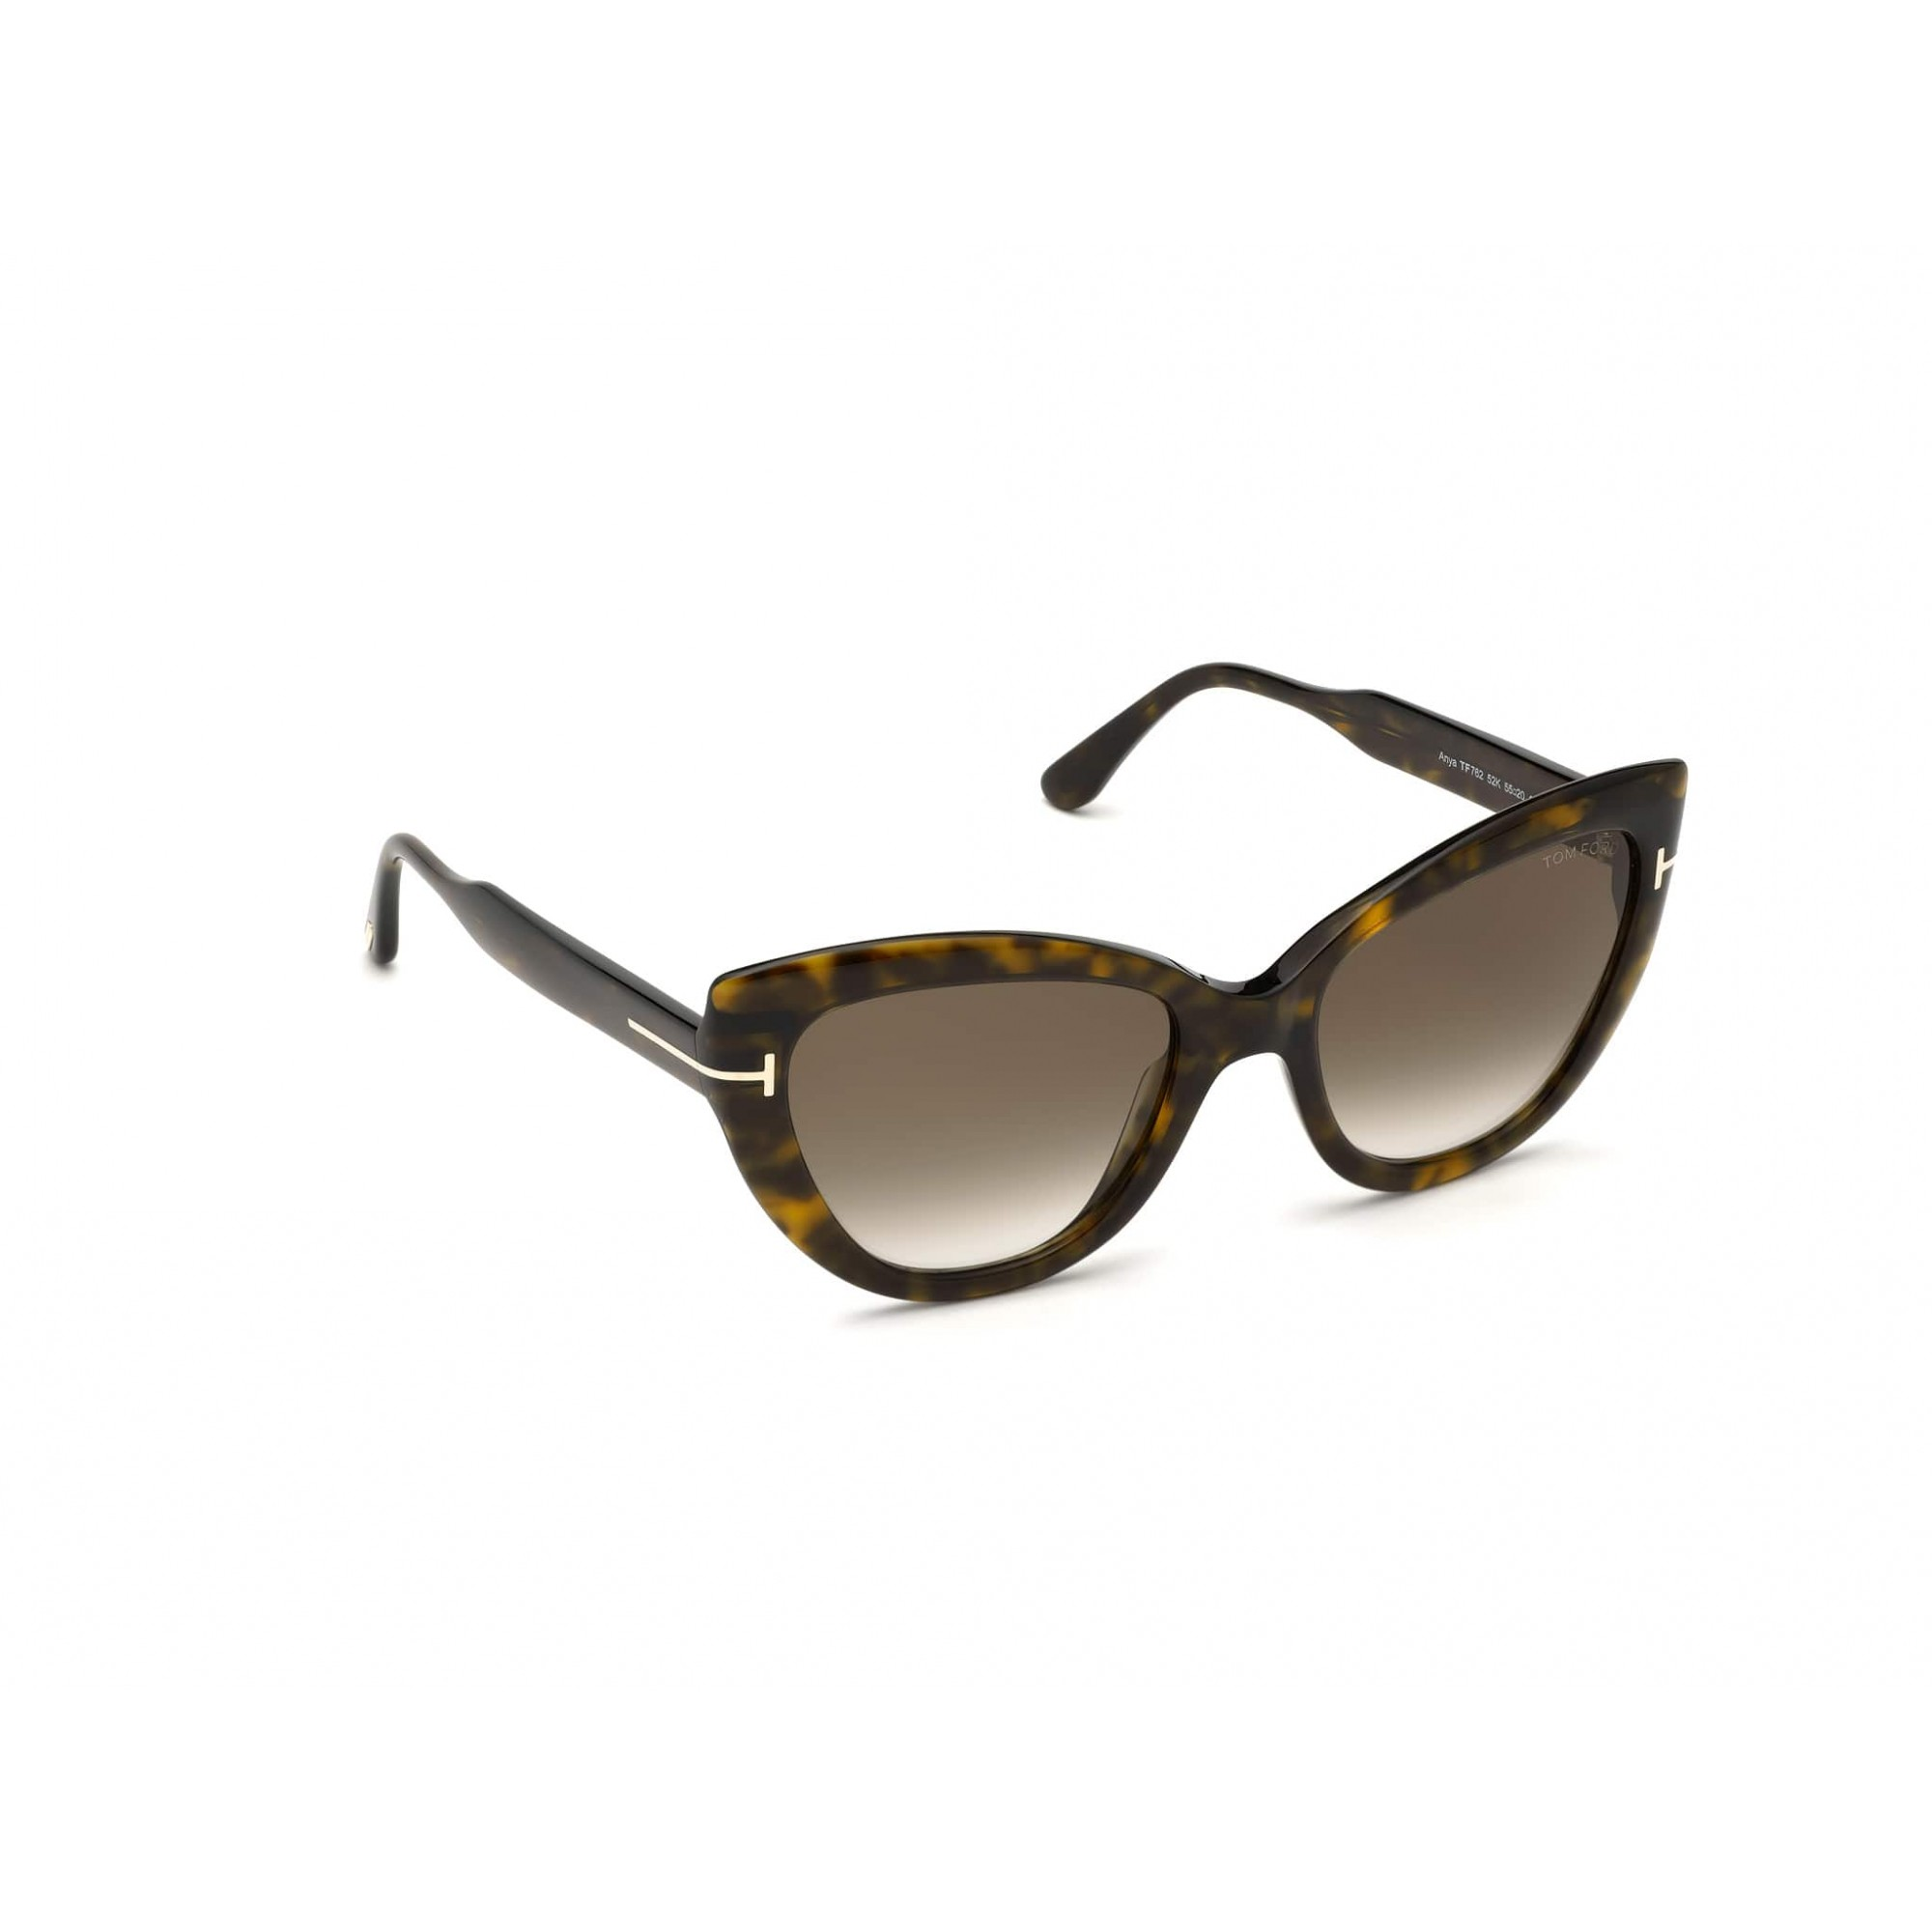 Tom Ford - FT0762 52K - Óculos de sol